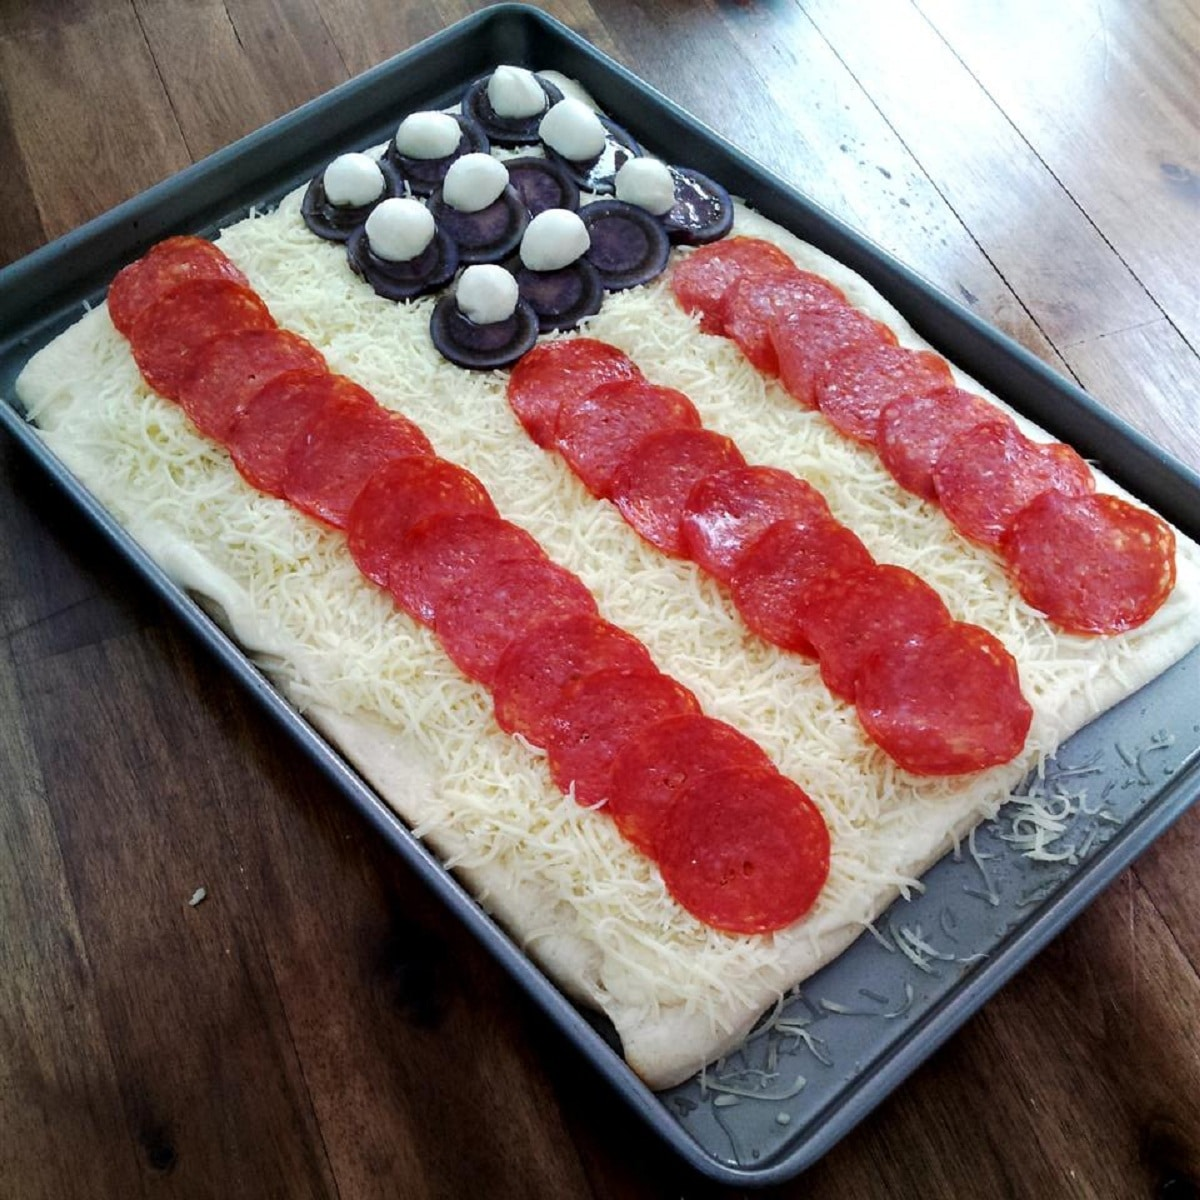 Baking sheet with pizza with decorations in shape of american flag